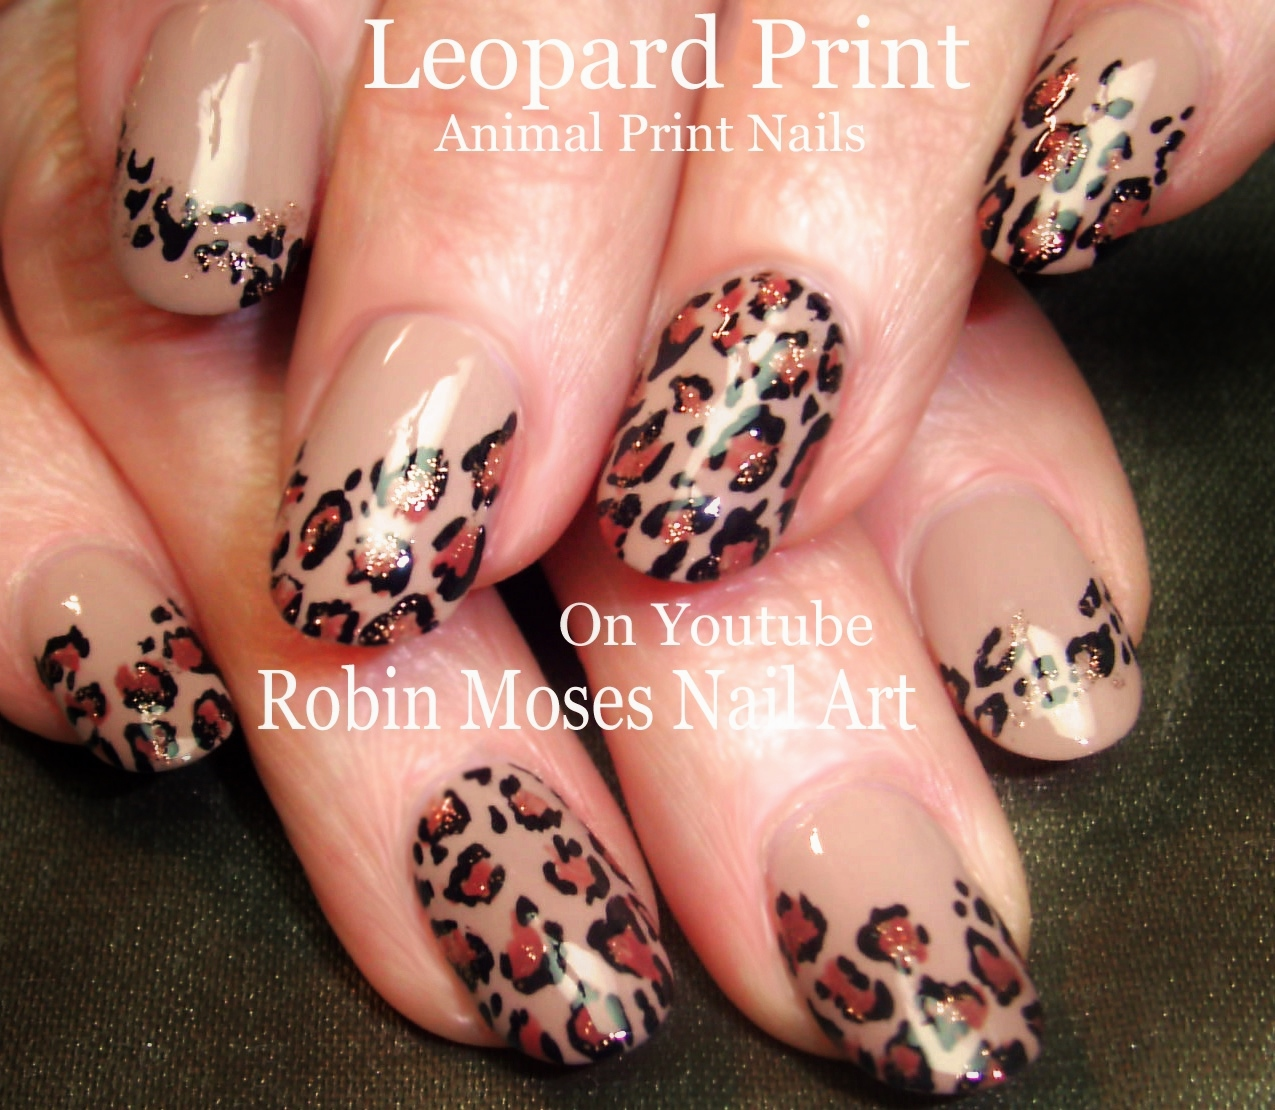 Nail Art by Robin Moses: Leopard Print Nails Design Tutorials! \